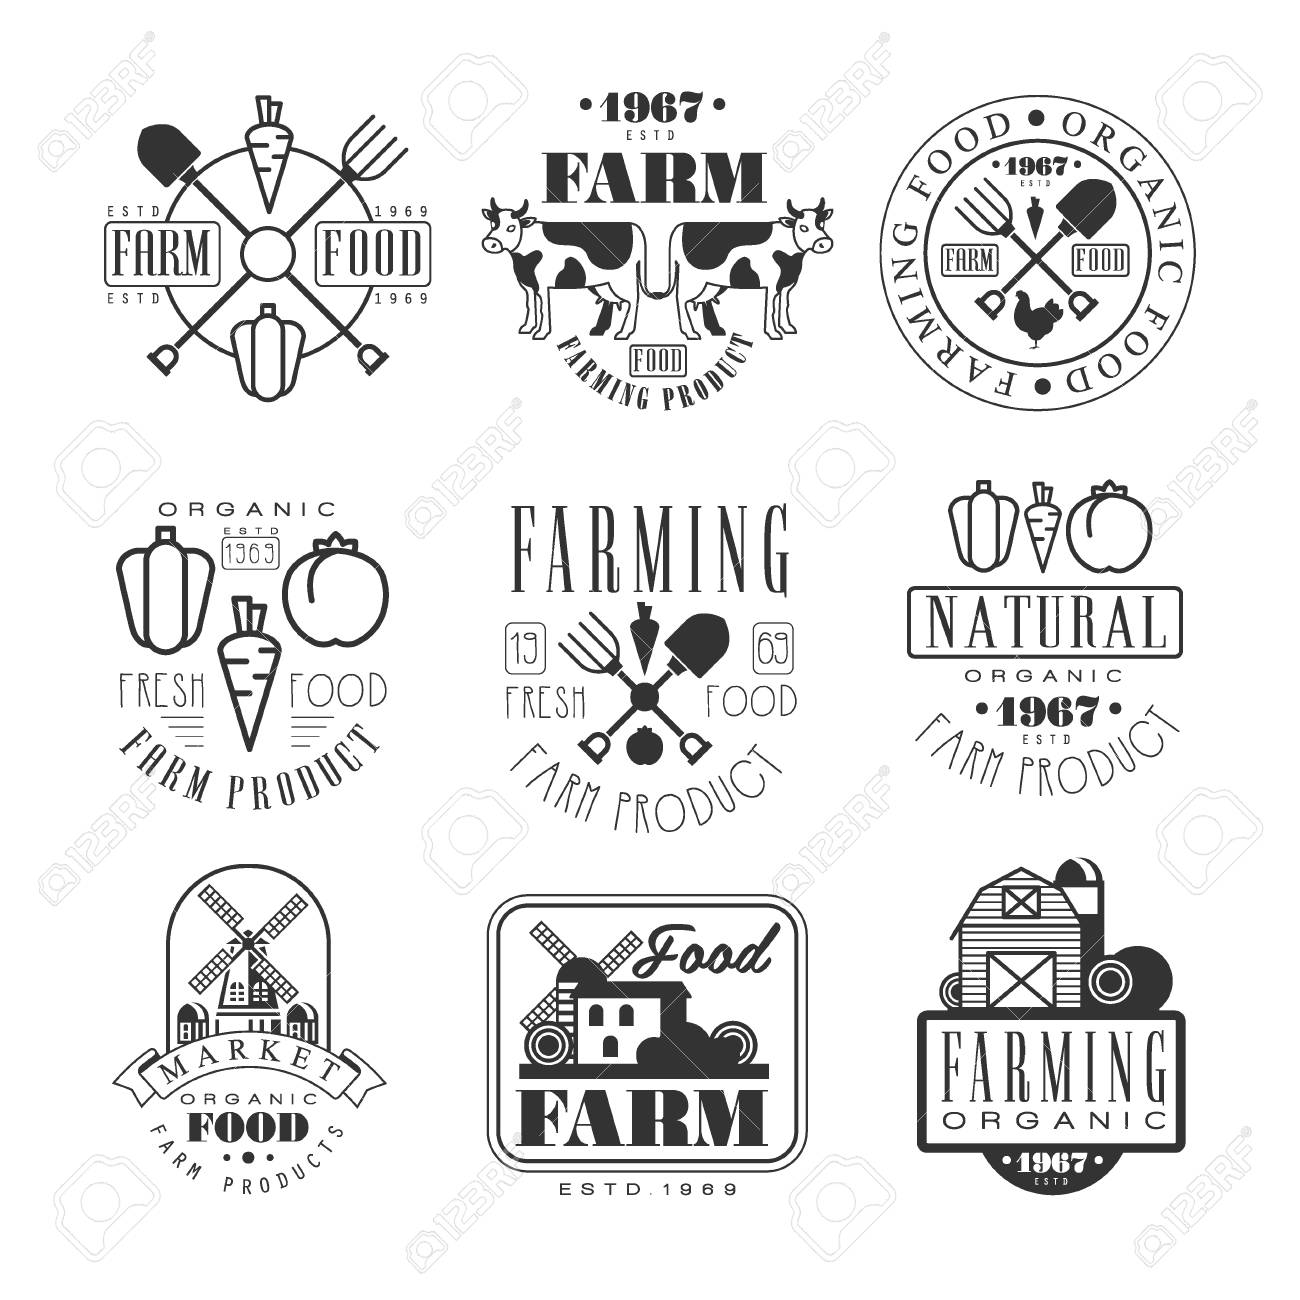 organic farm products black and white sign design templates with text and tools silhouettes stock vector